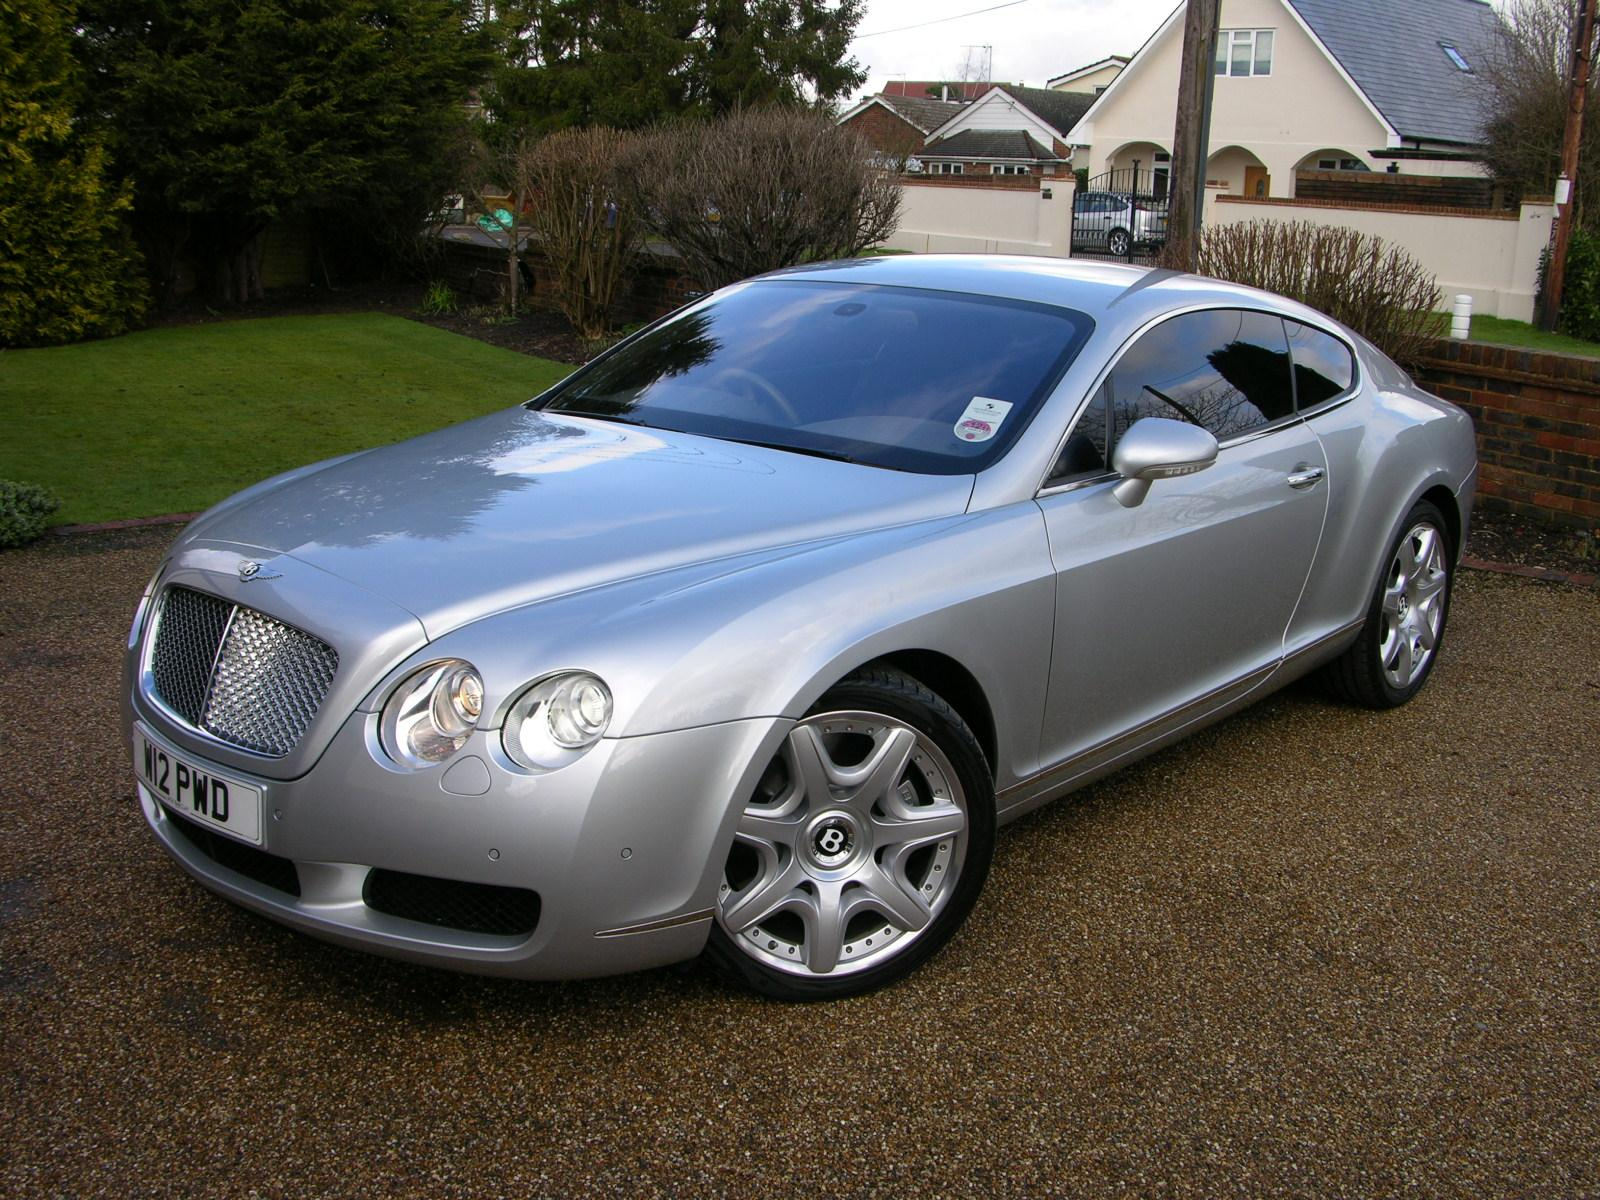 file:2005 bentley continental gt - flickr - the car spy (29)